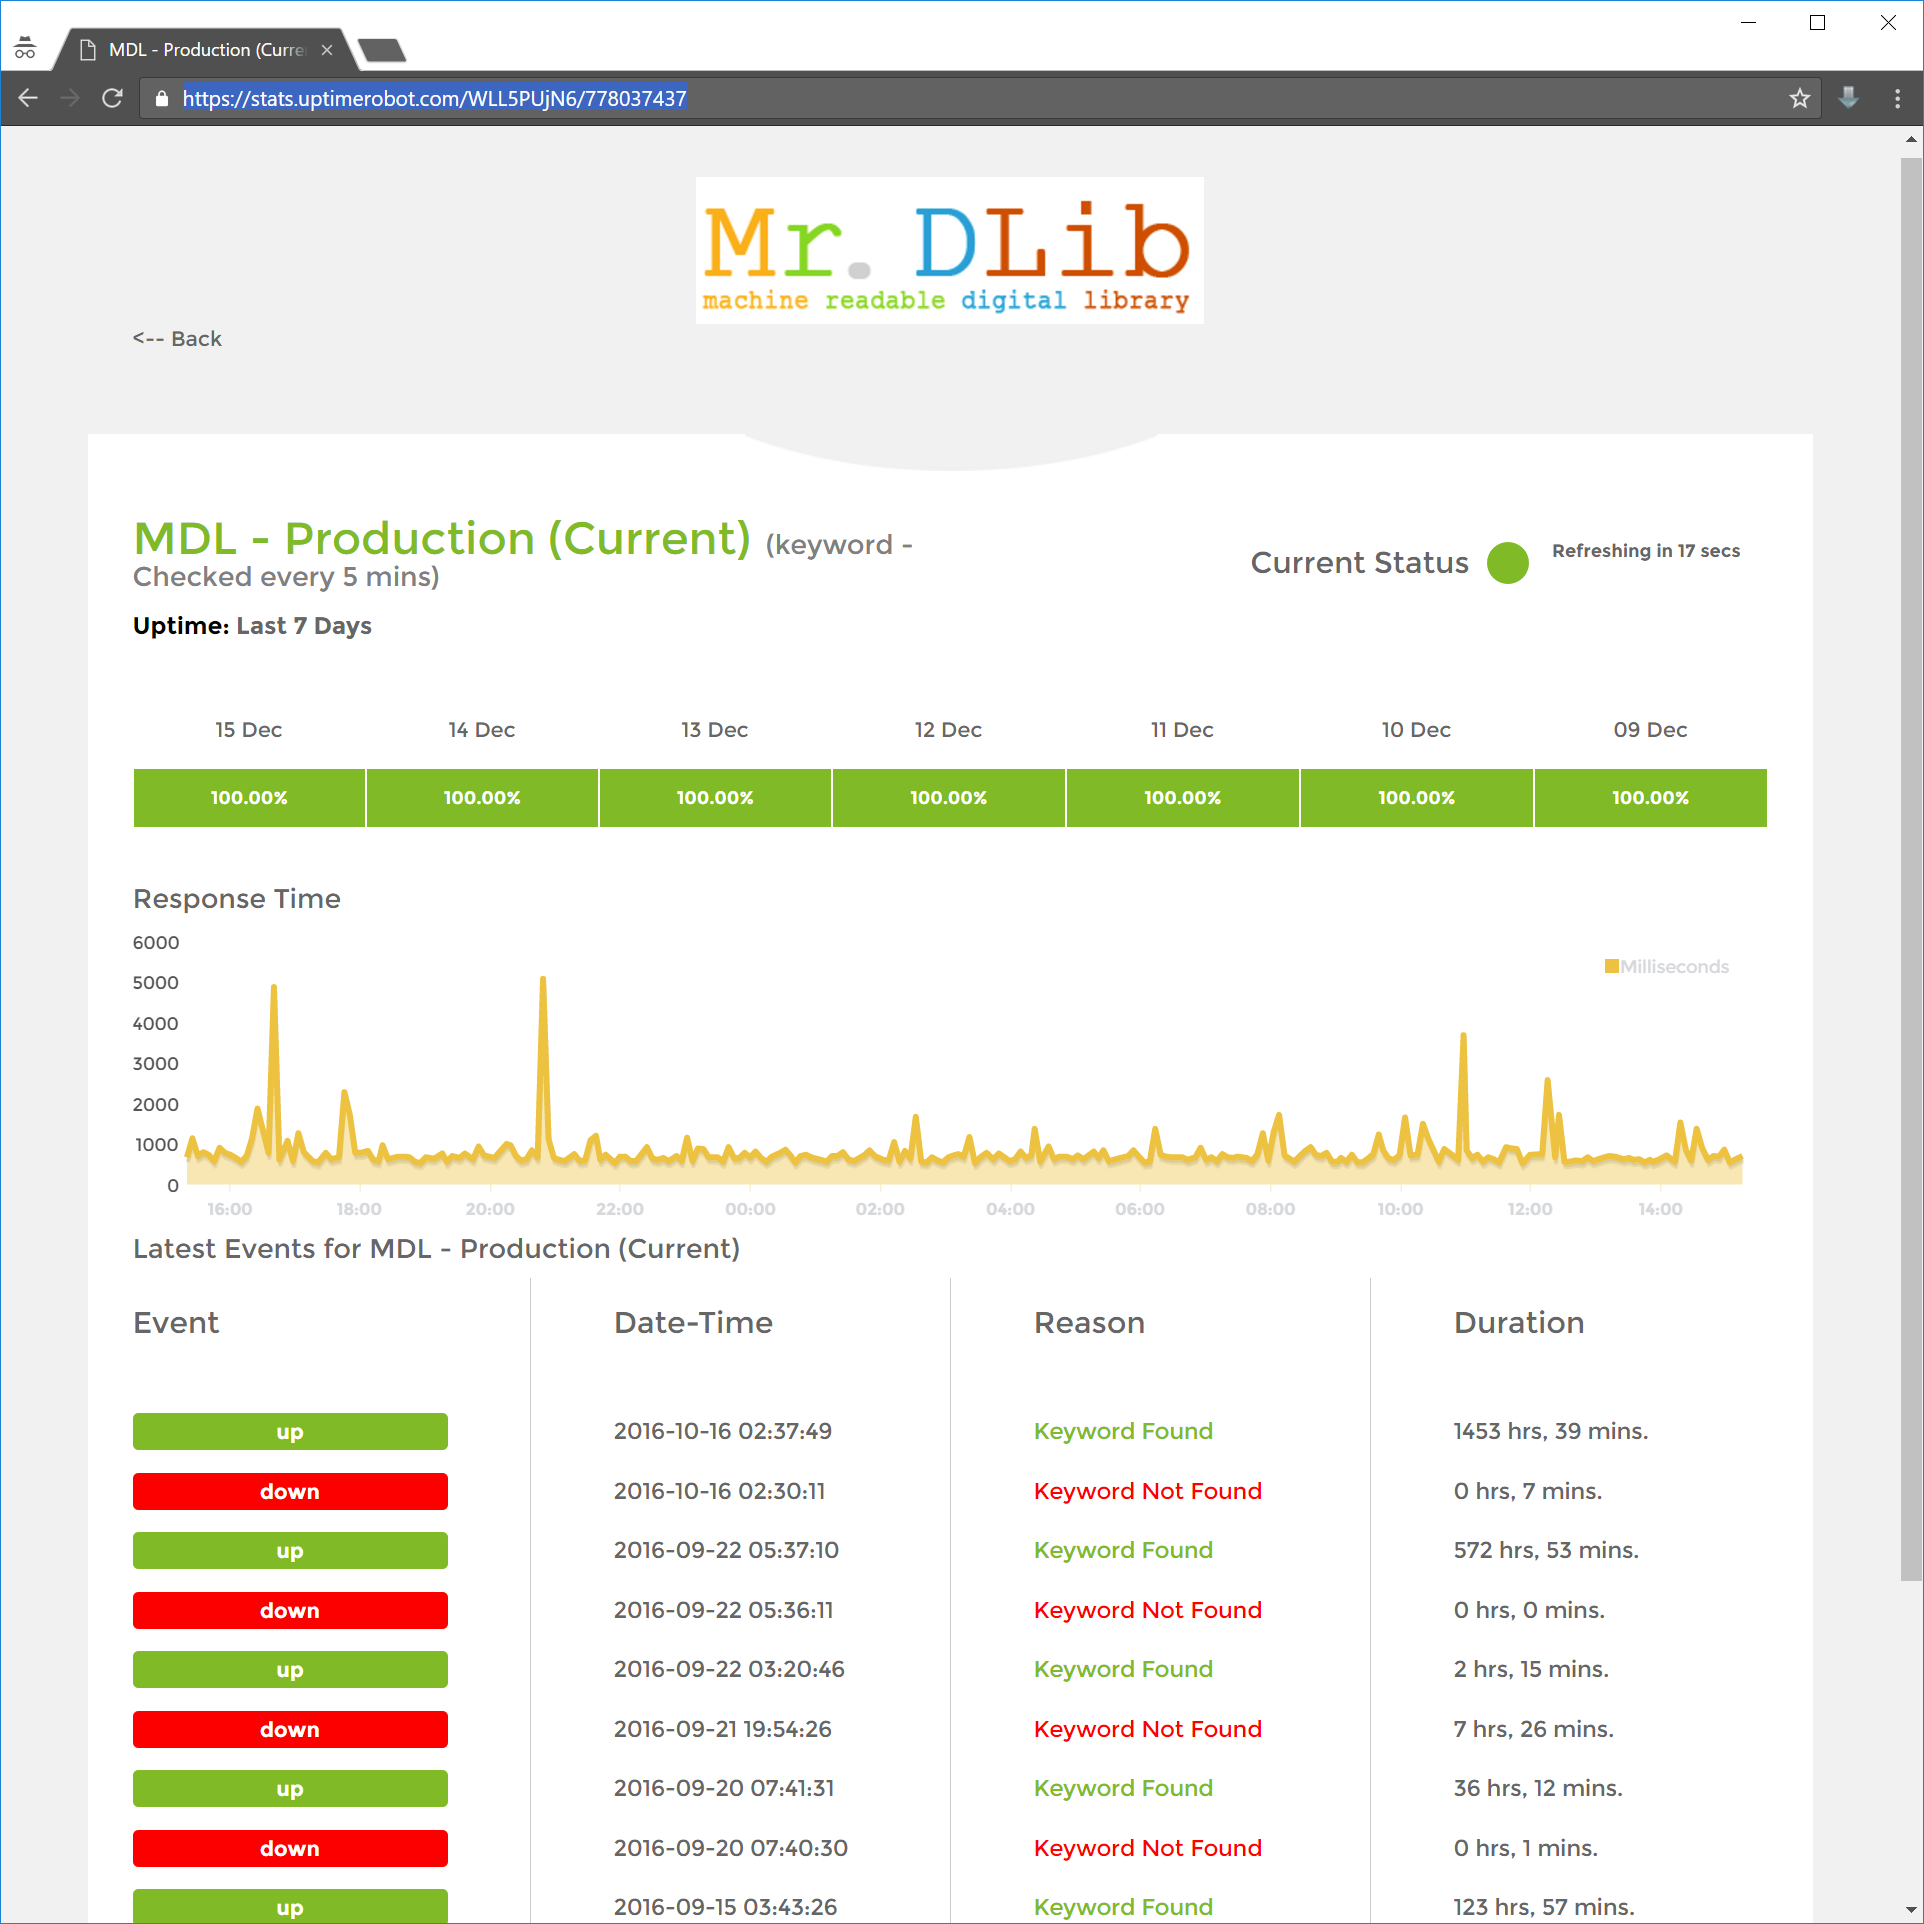 Overview of the status of Mr. DLib's Recommendations-as-a-Service (one server)